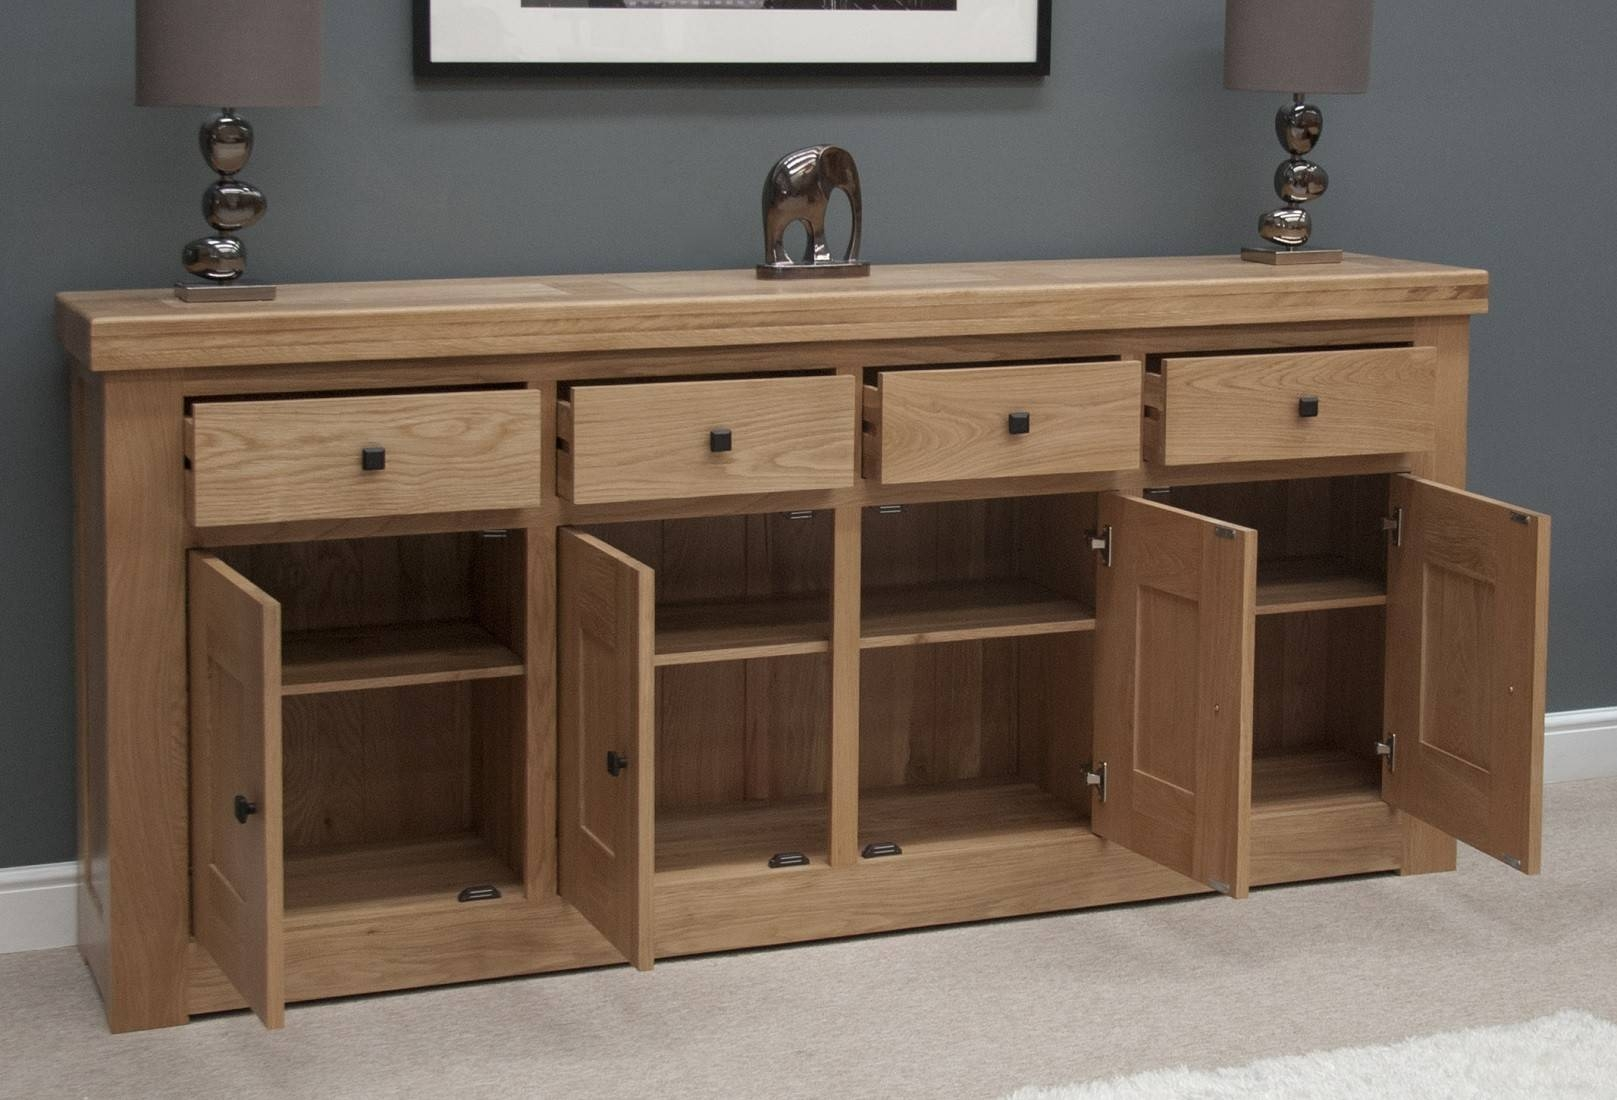 French Bordeaux Oak Extra Large 4 Door Sideboard | Oak Furniture Uk For Oak Sideboards For Sale (View 7 of 30)